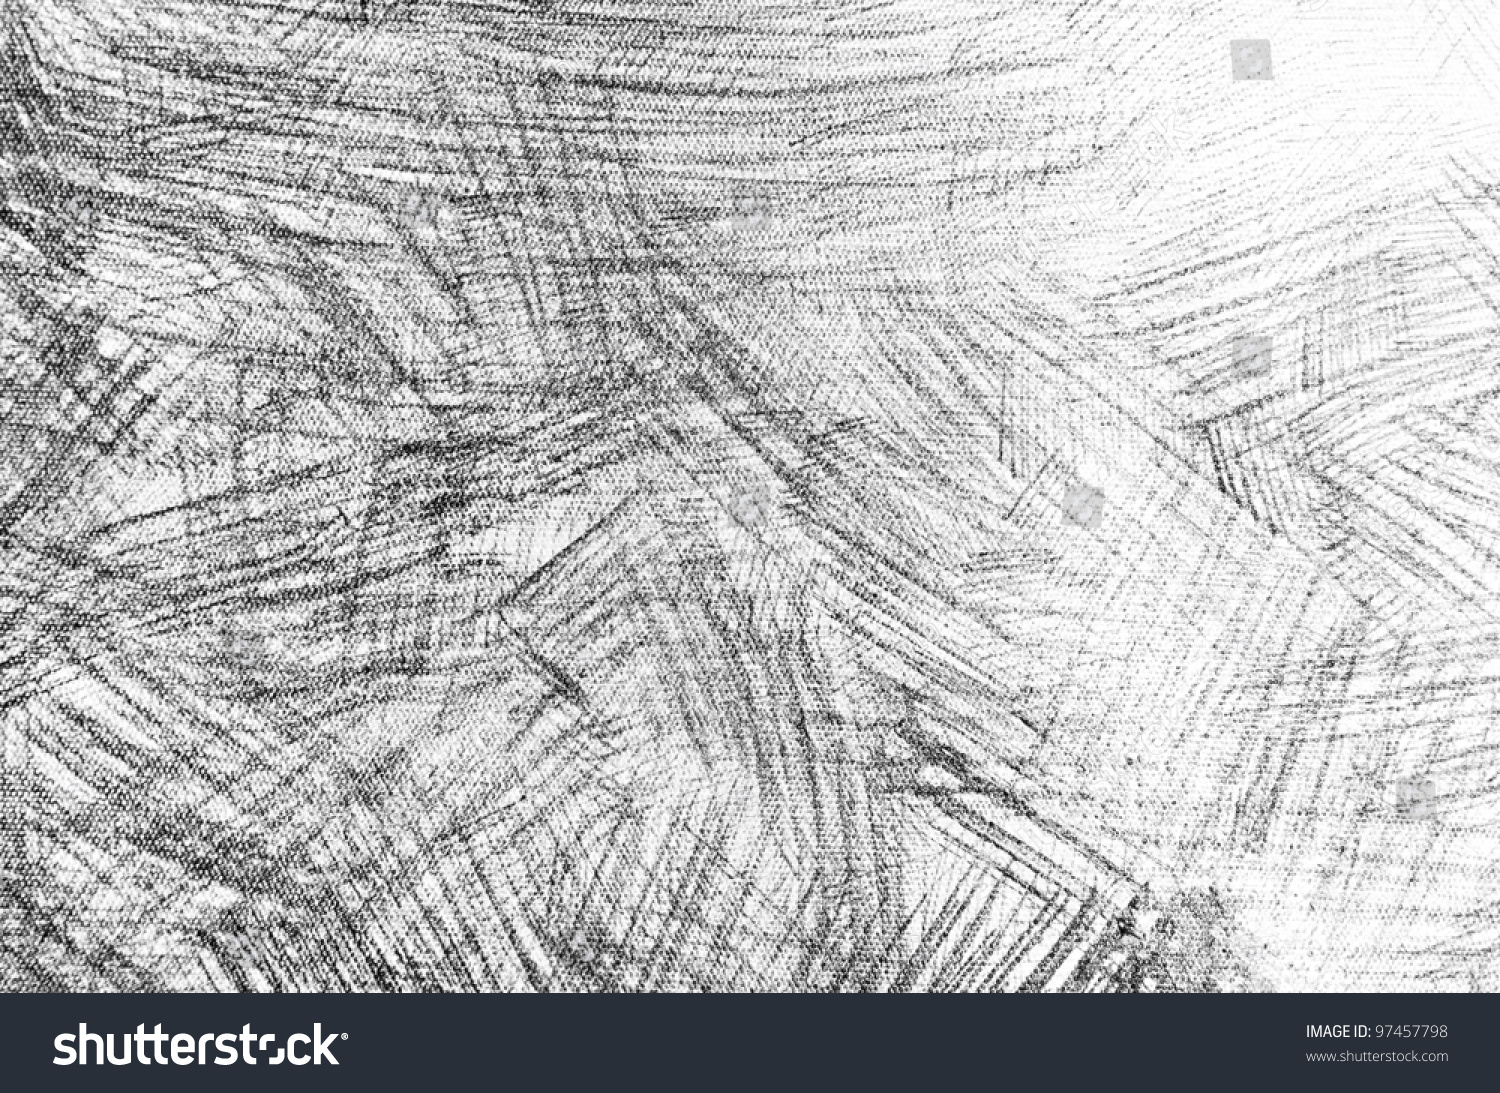 Pencil Sketch Grunge Texture Stock Photo 97457798 ...